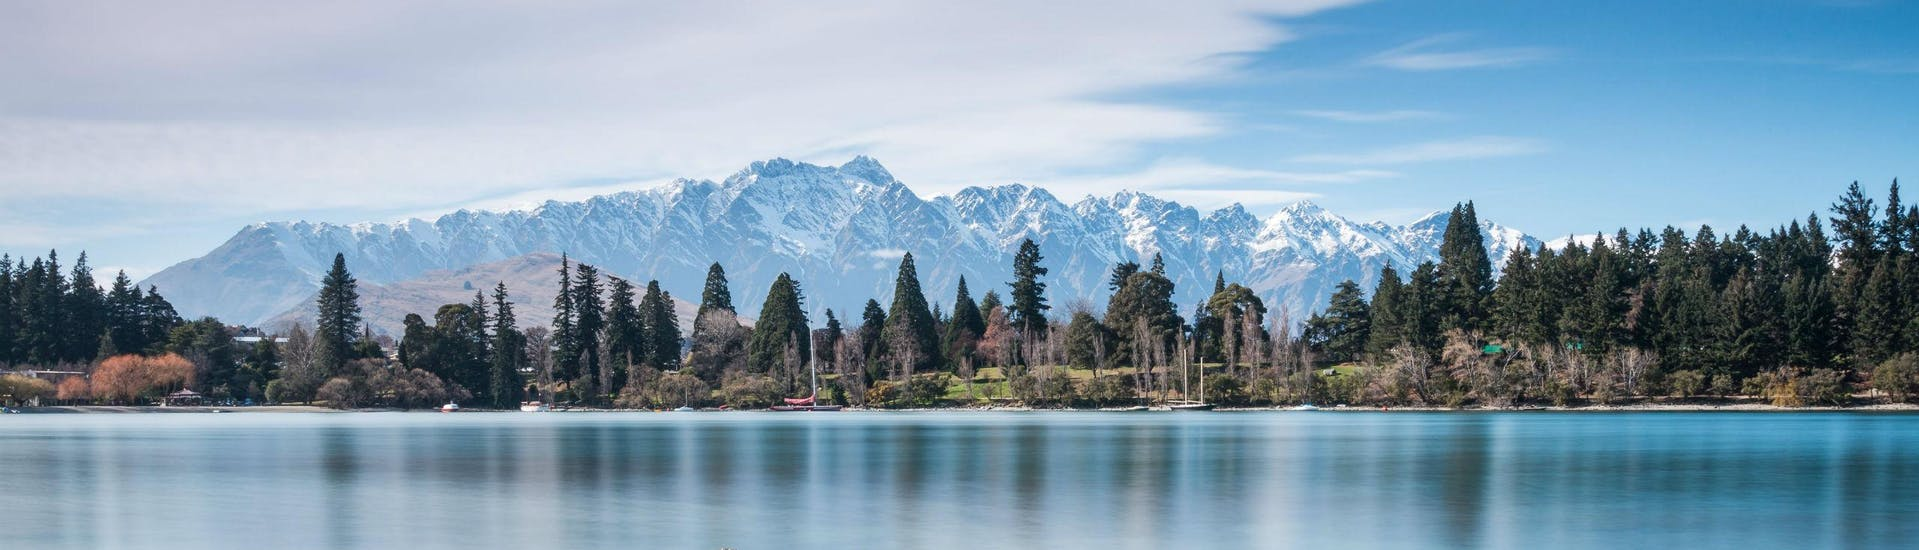 A boat trip on Lake Wakatipu allows visitors to take in the magnificent scenery around Queenstown.